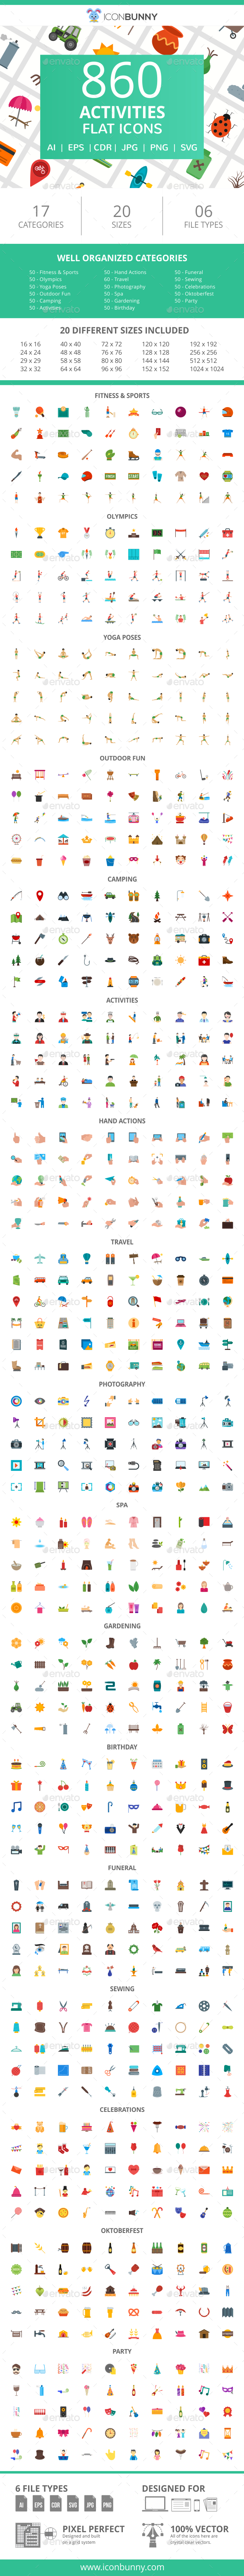 GraphicRiver 860 Activities Flat Icons 21055678